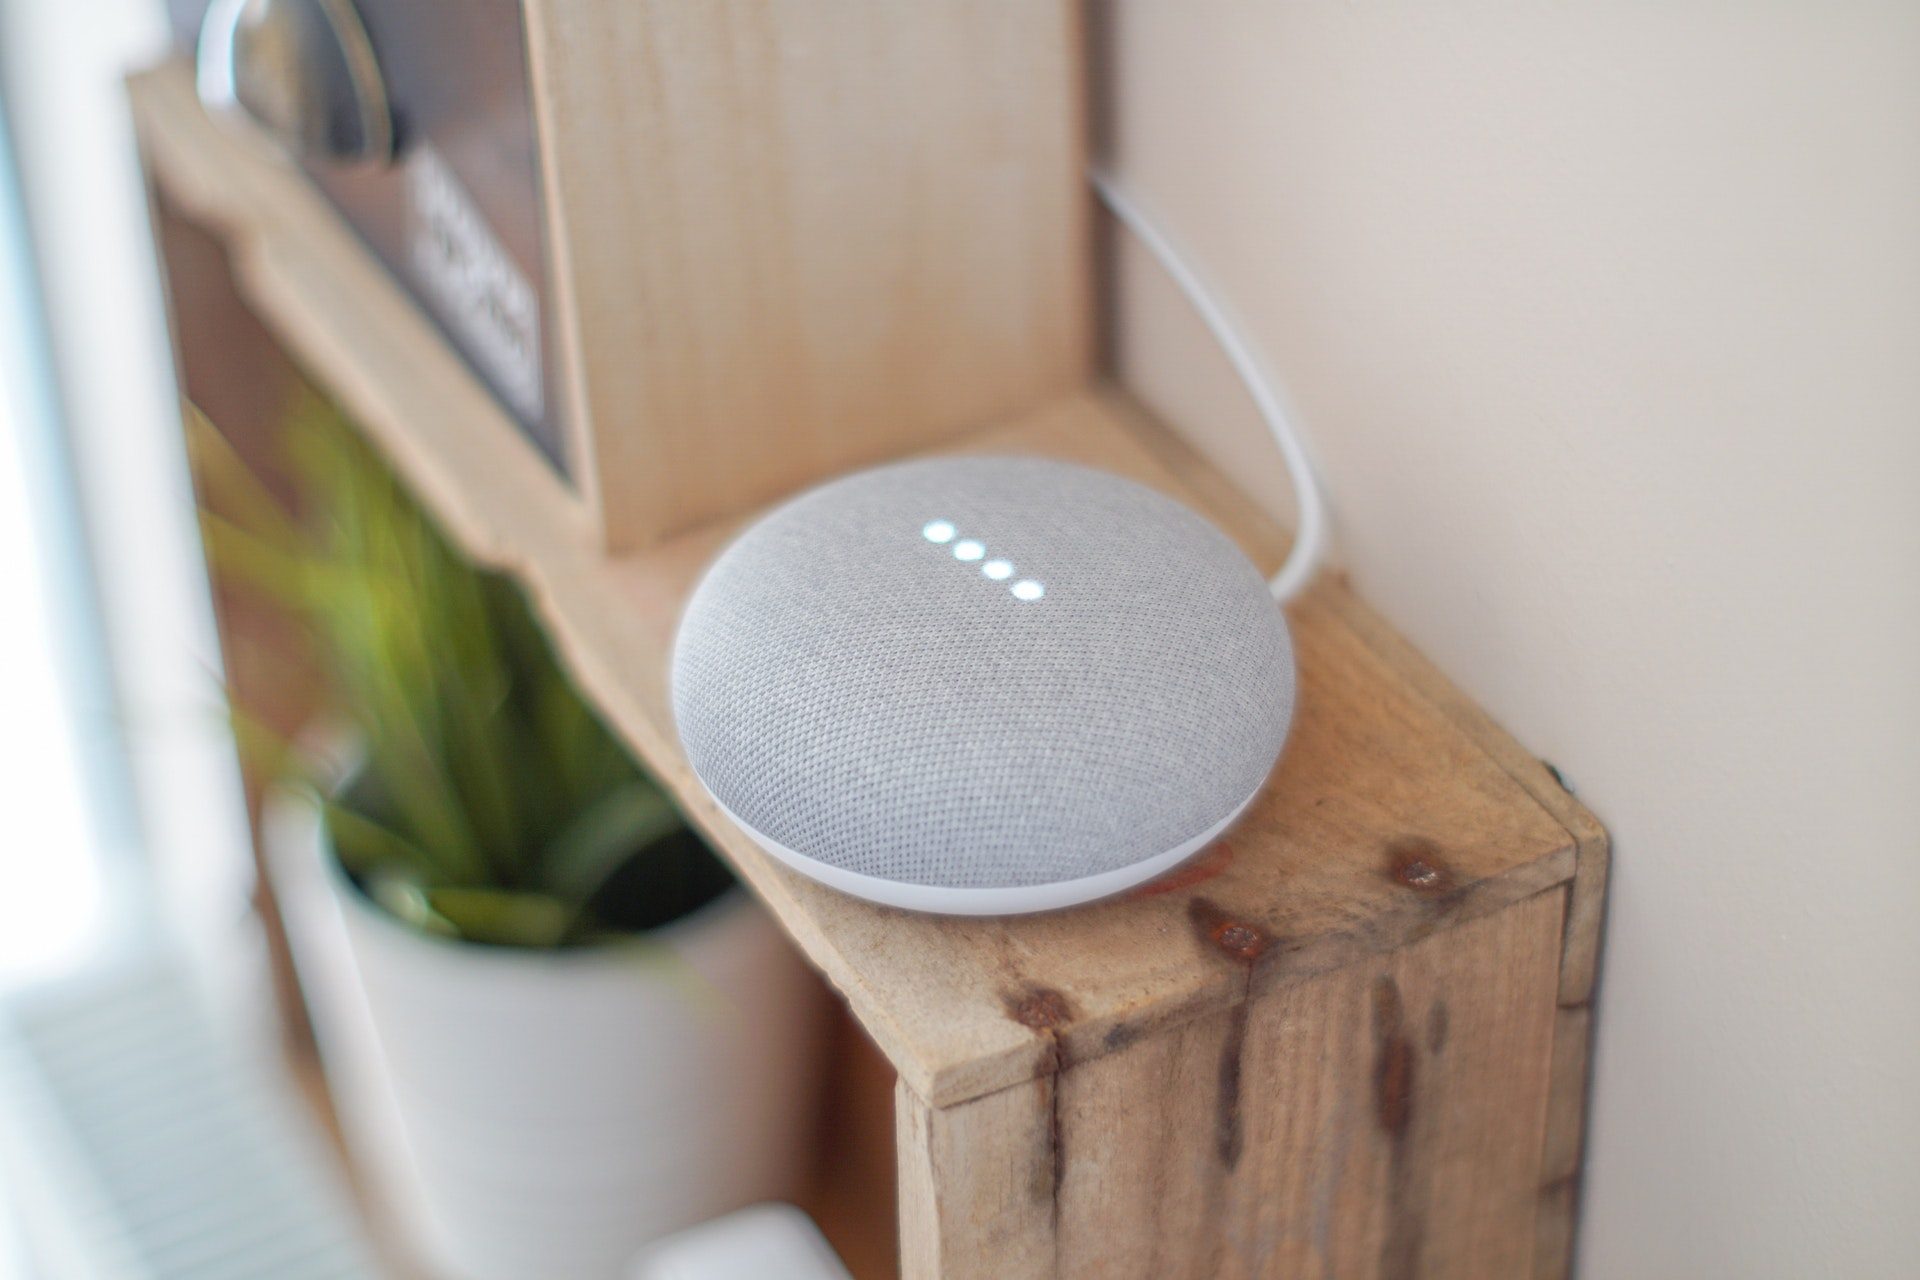 Grey google home mini on shelf